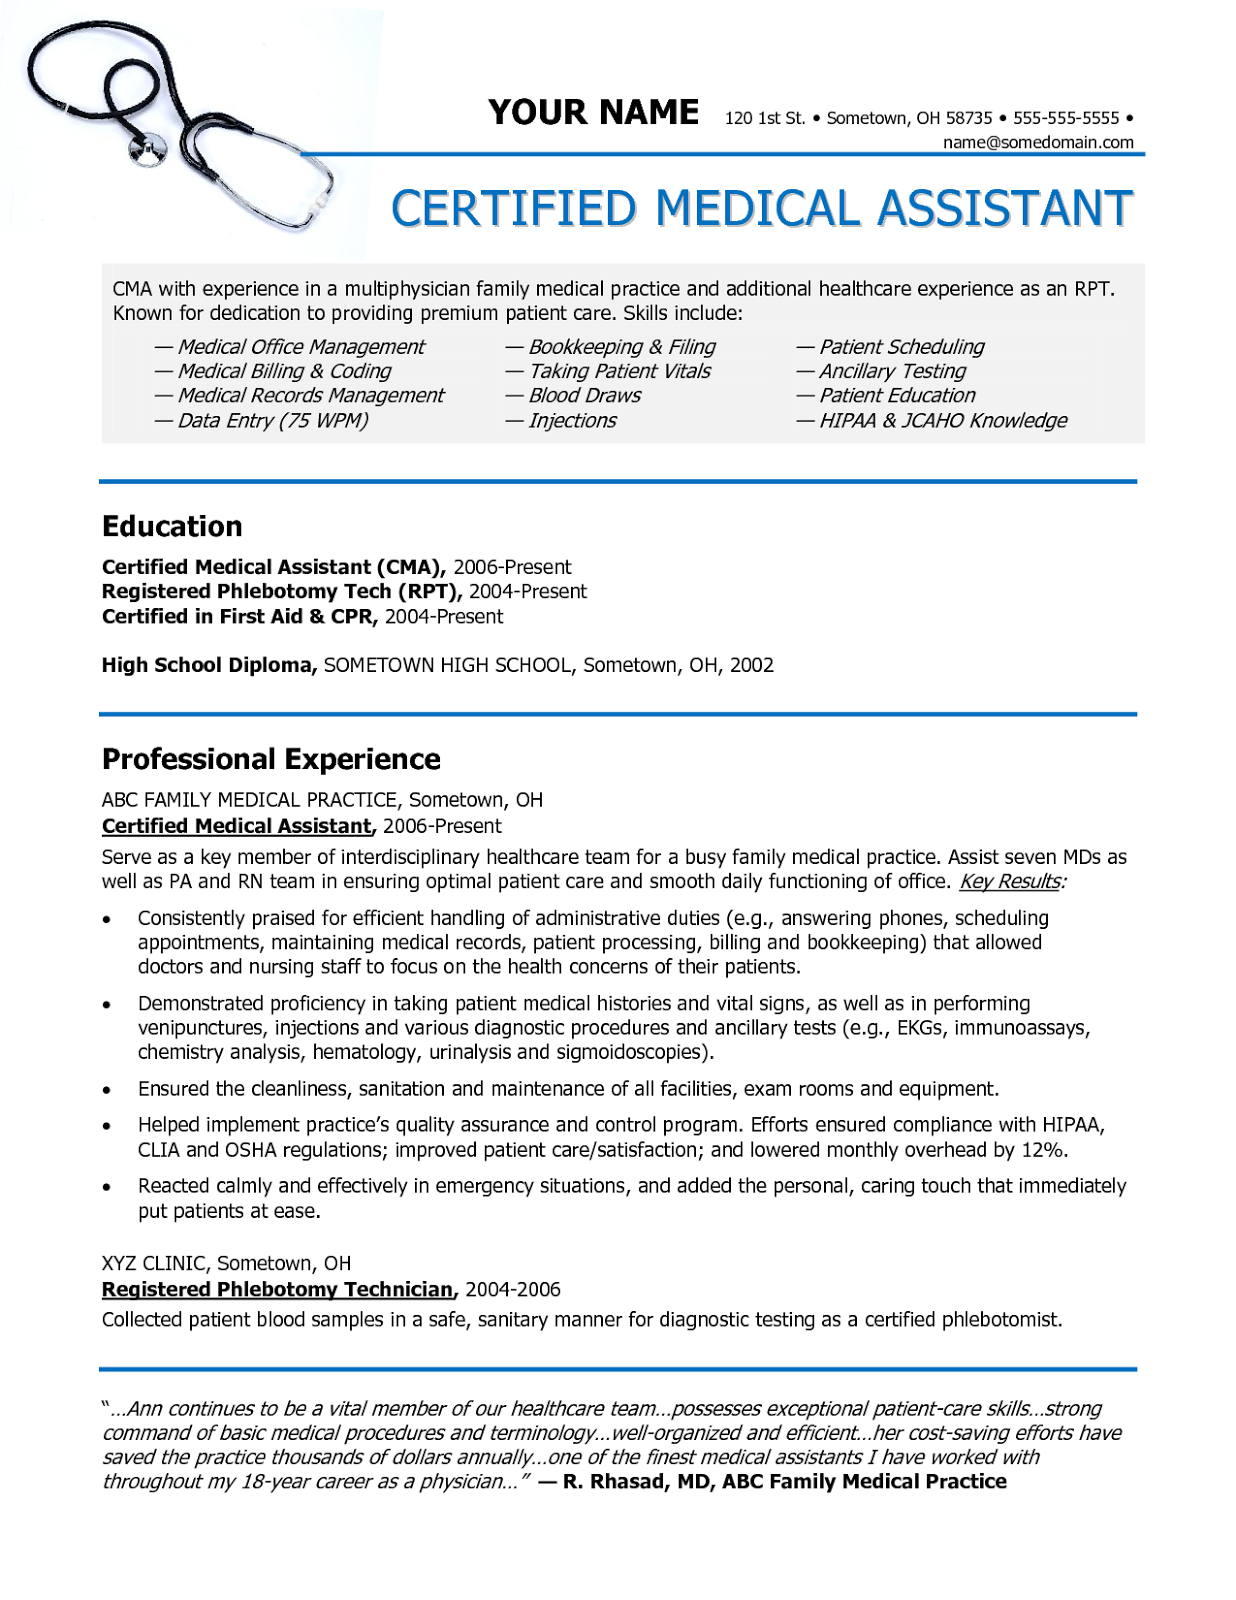 Administrative Assistant Objective Samples  medical assistant      Aaaaeroincus Inspiring Resume Writing Guide Jobscan With Extraordinary Example Of A Functional Resume Format With Comely Cna Resume Objectives Also Resume